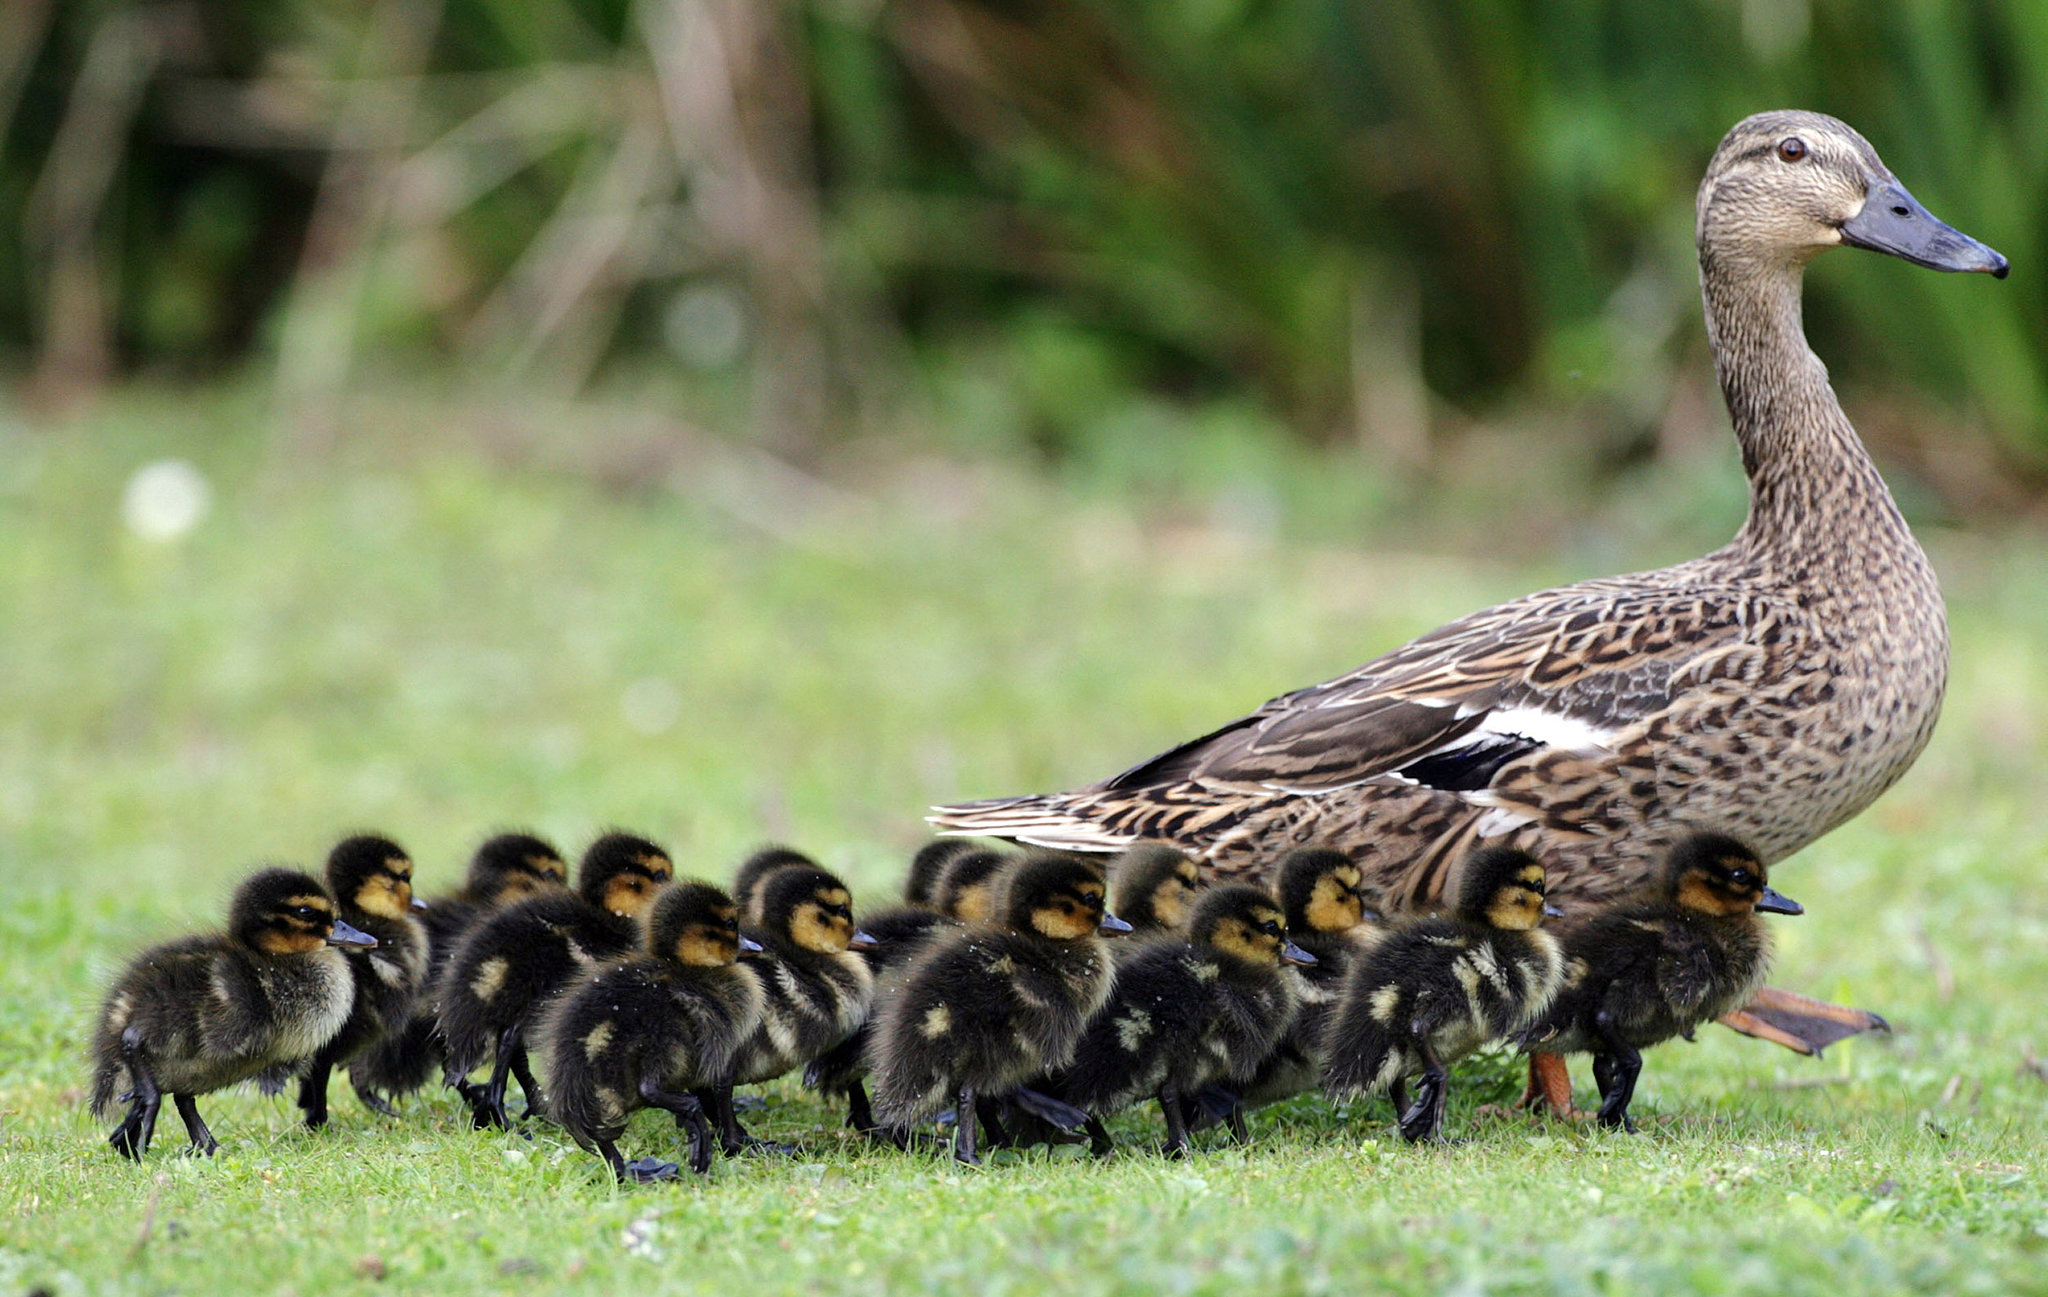 """D"""" is for Ducks, Dabblers and Divers: """"D"""" Birds, Part 1 